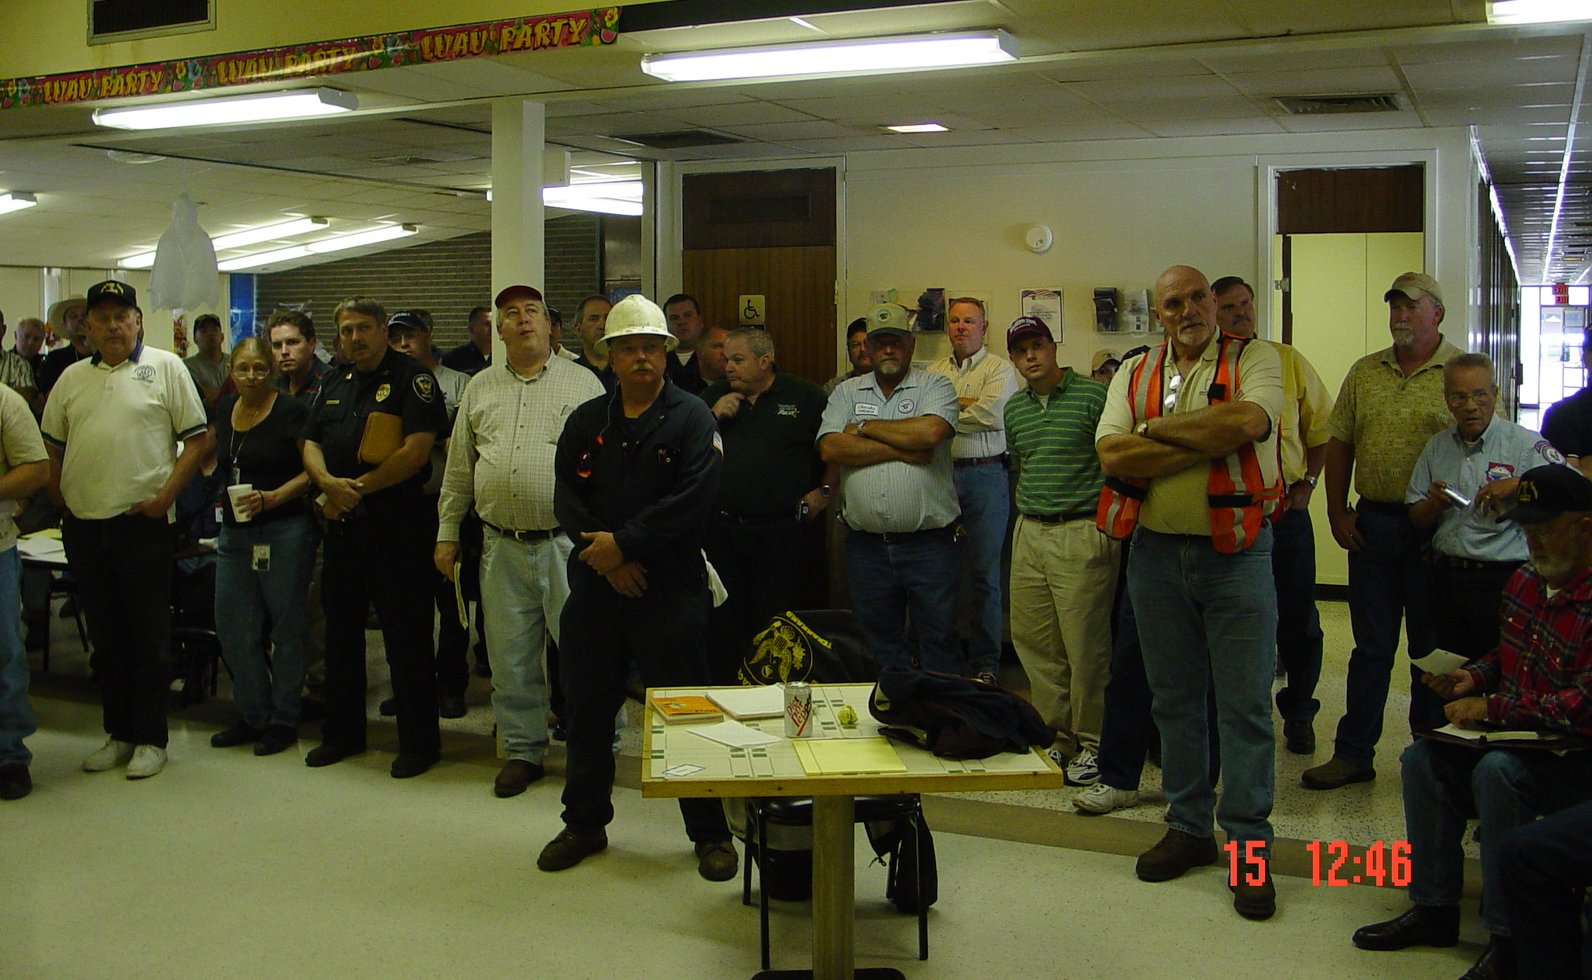 Emergency personnel meet in a building to discuss the best course of action.